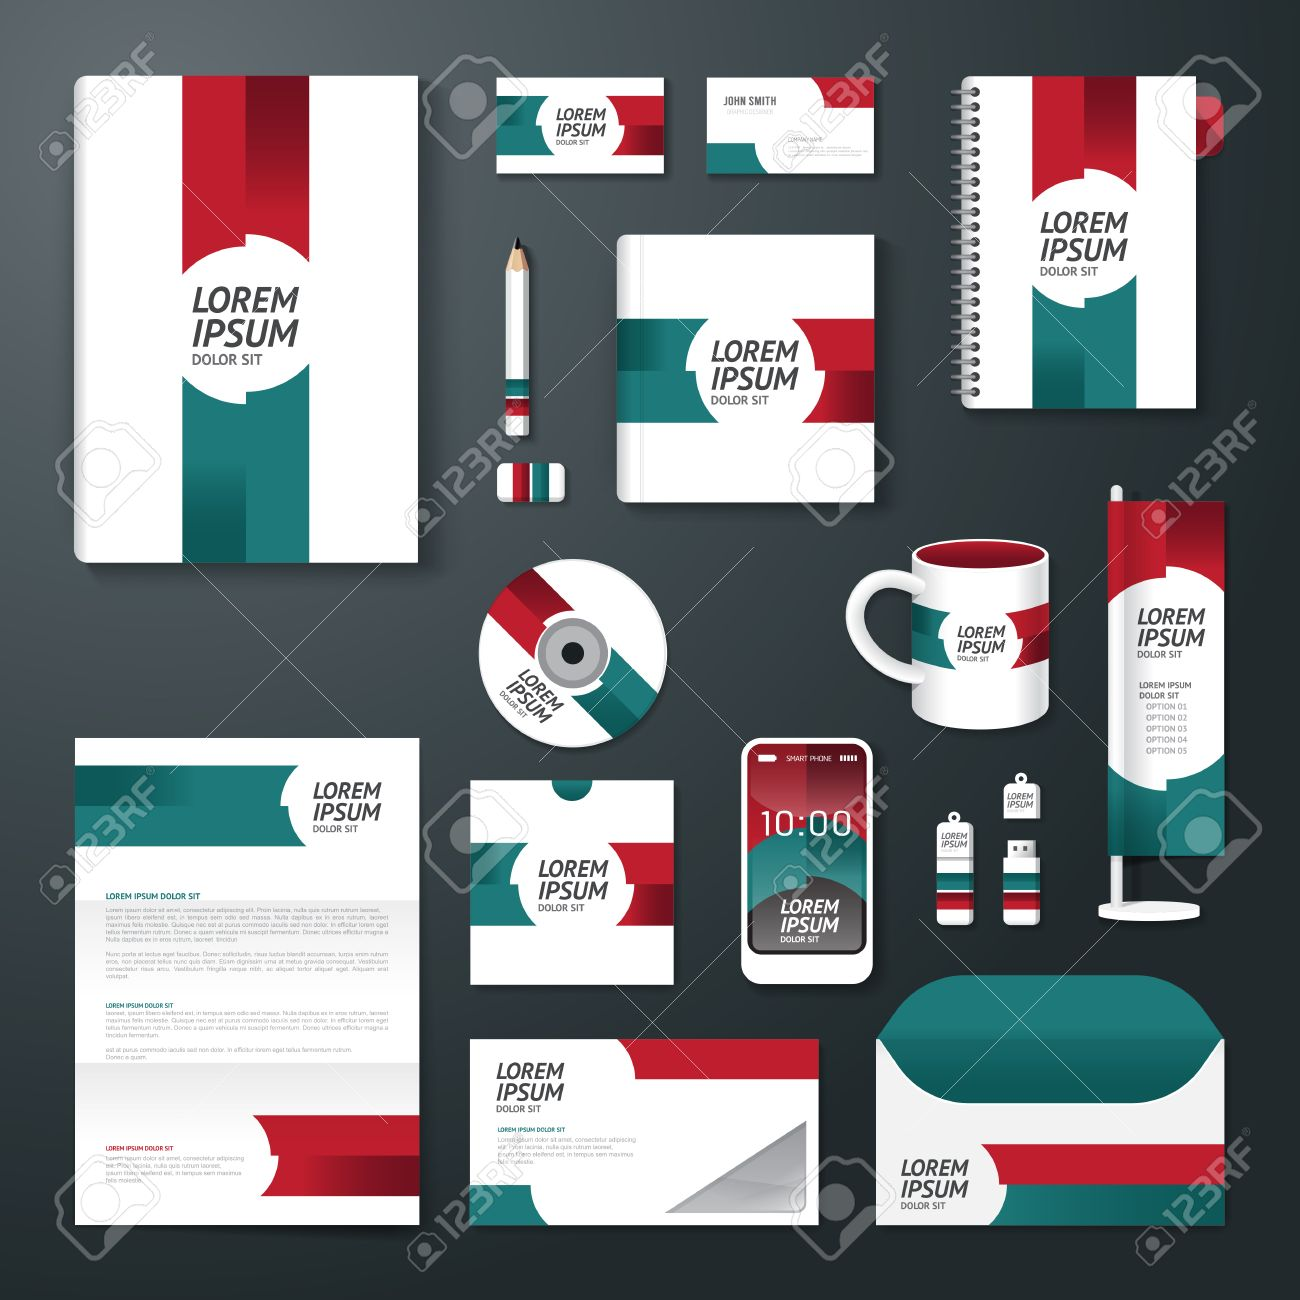 Poster design size - Vector Vector Brochure Flyer Magazine Cover Booklet Poster Design Template Layout Business Stationery Annual Report A4 Size Set Of Corporate Identity